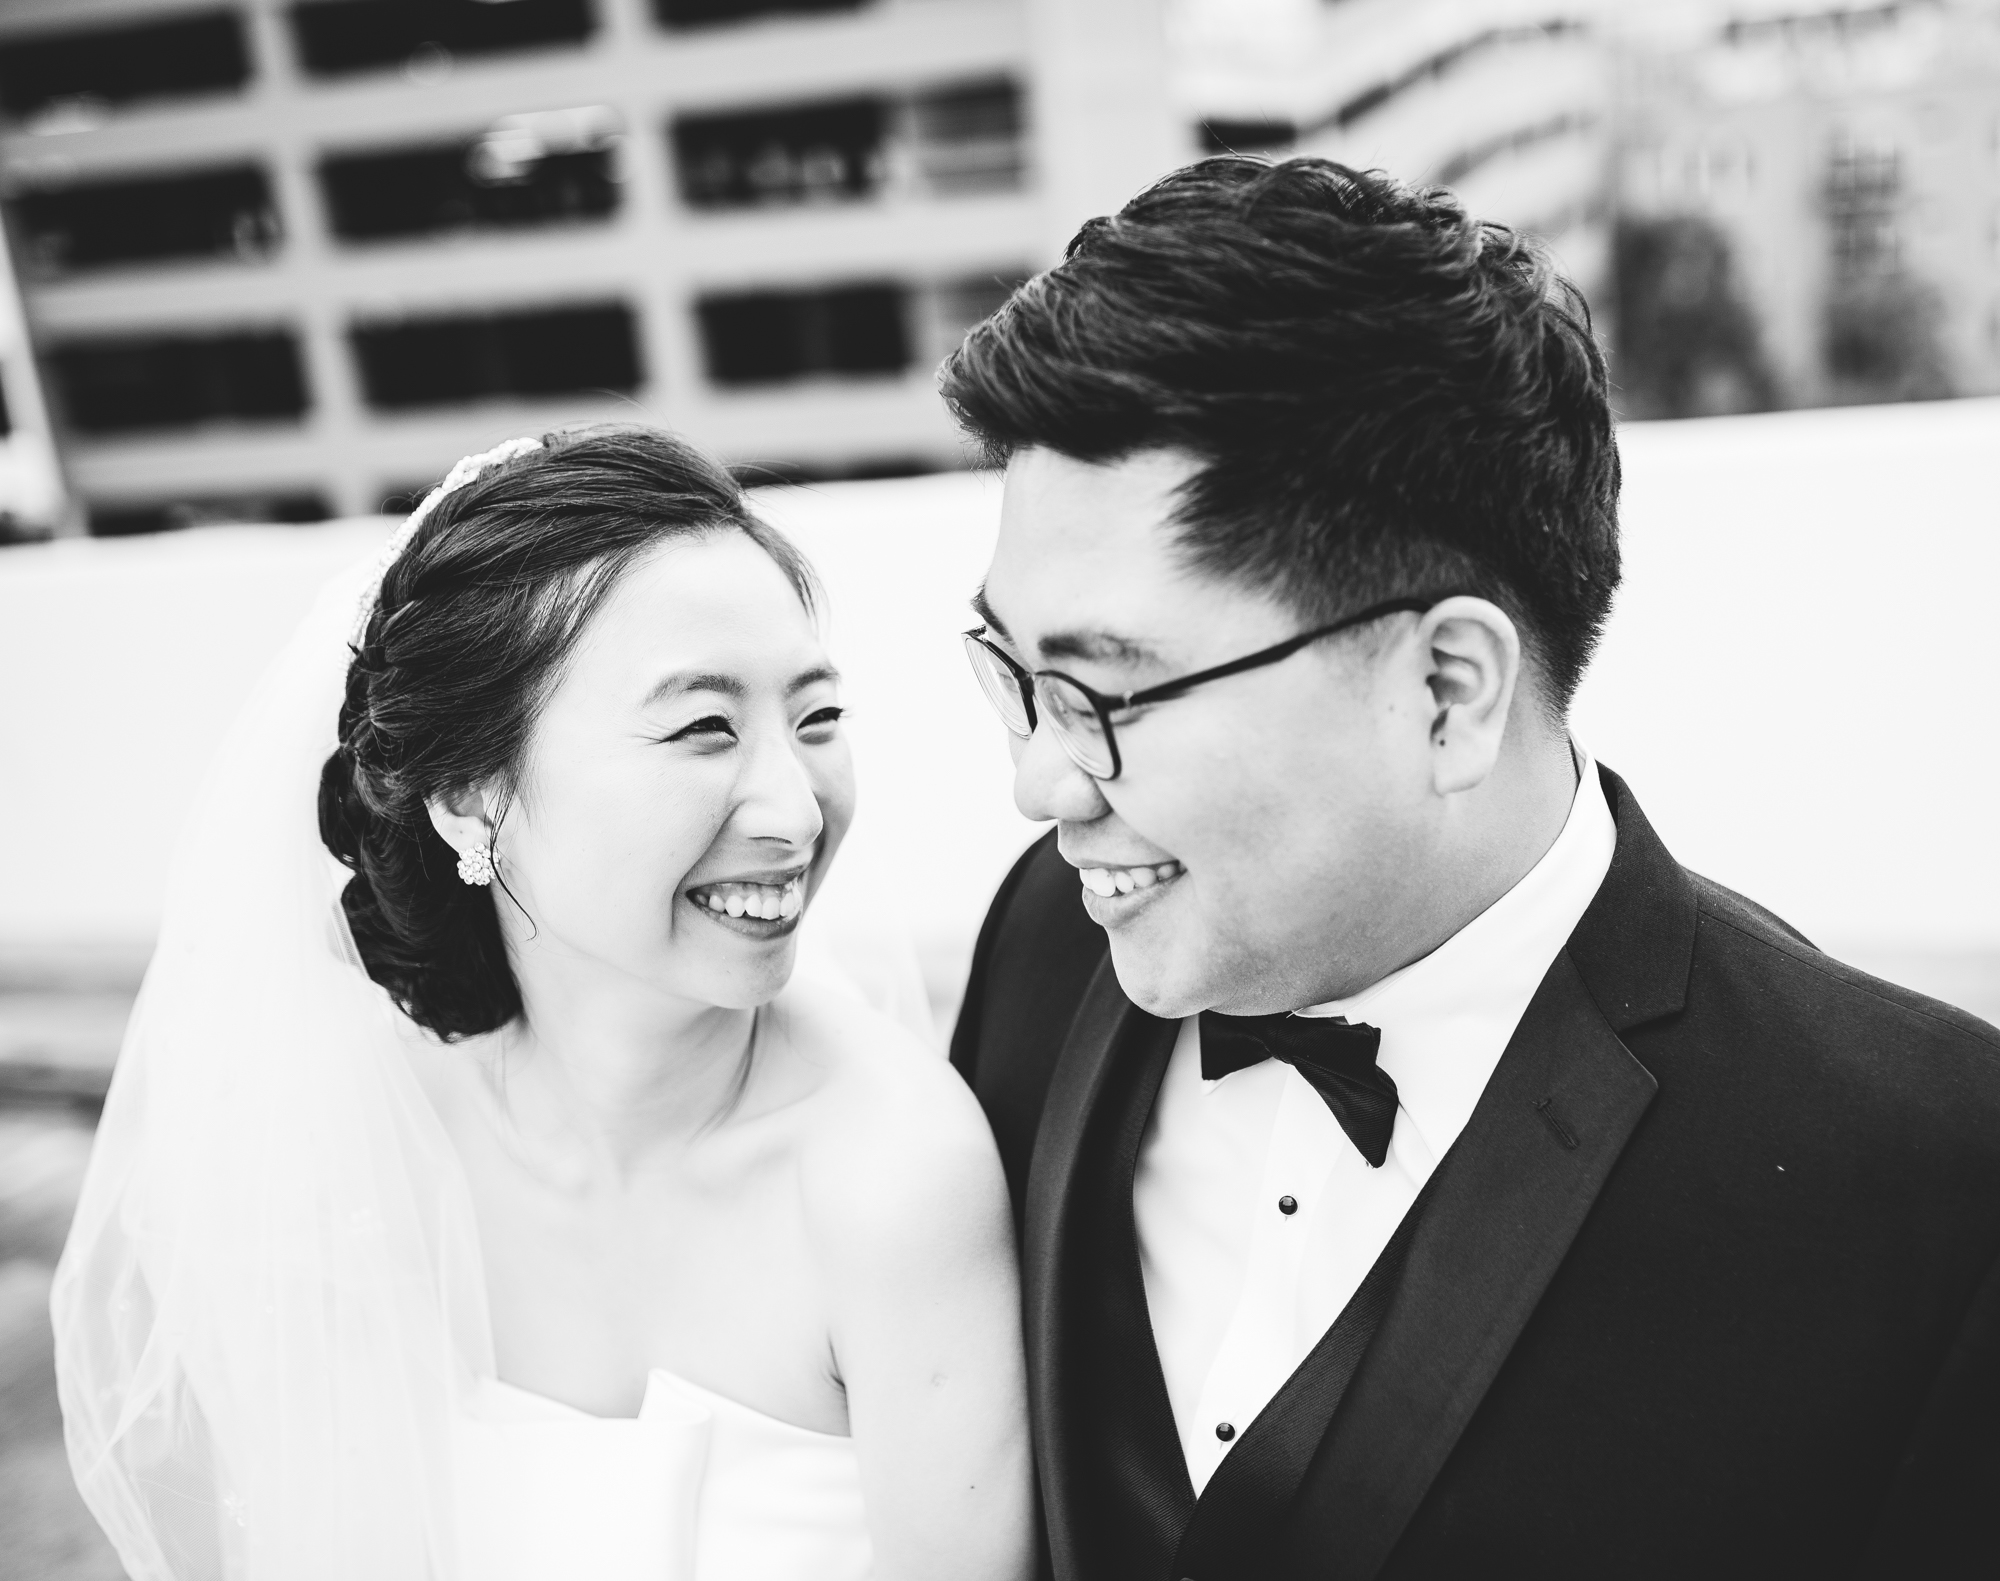 ©Isaiah & Taylor Photography - Destination Wedding Photographers - Downtown Los Angeles Parking Lot Rooftop Wedding-016.jpg